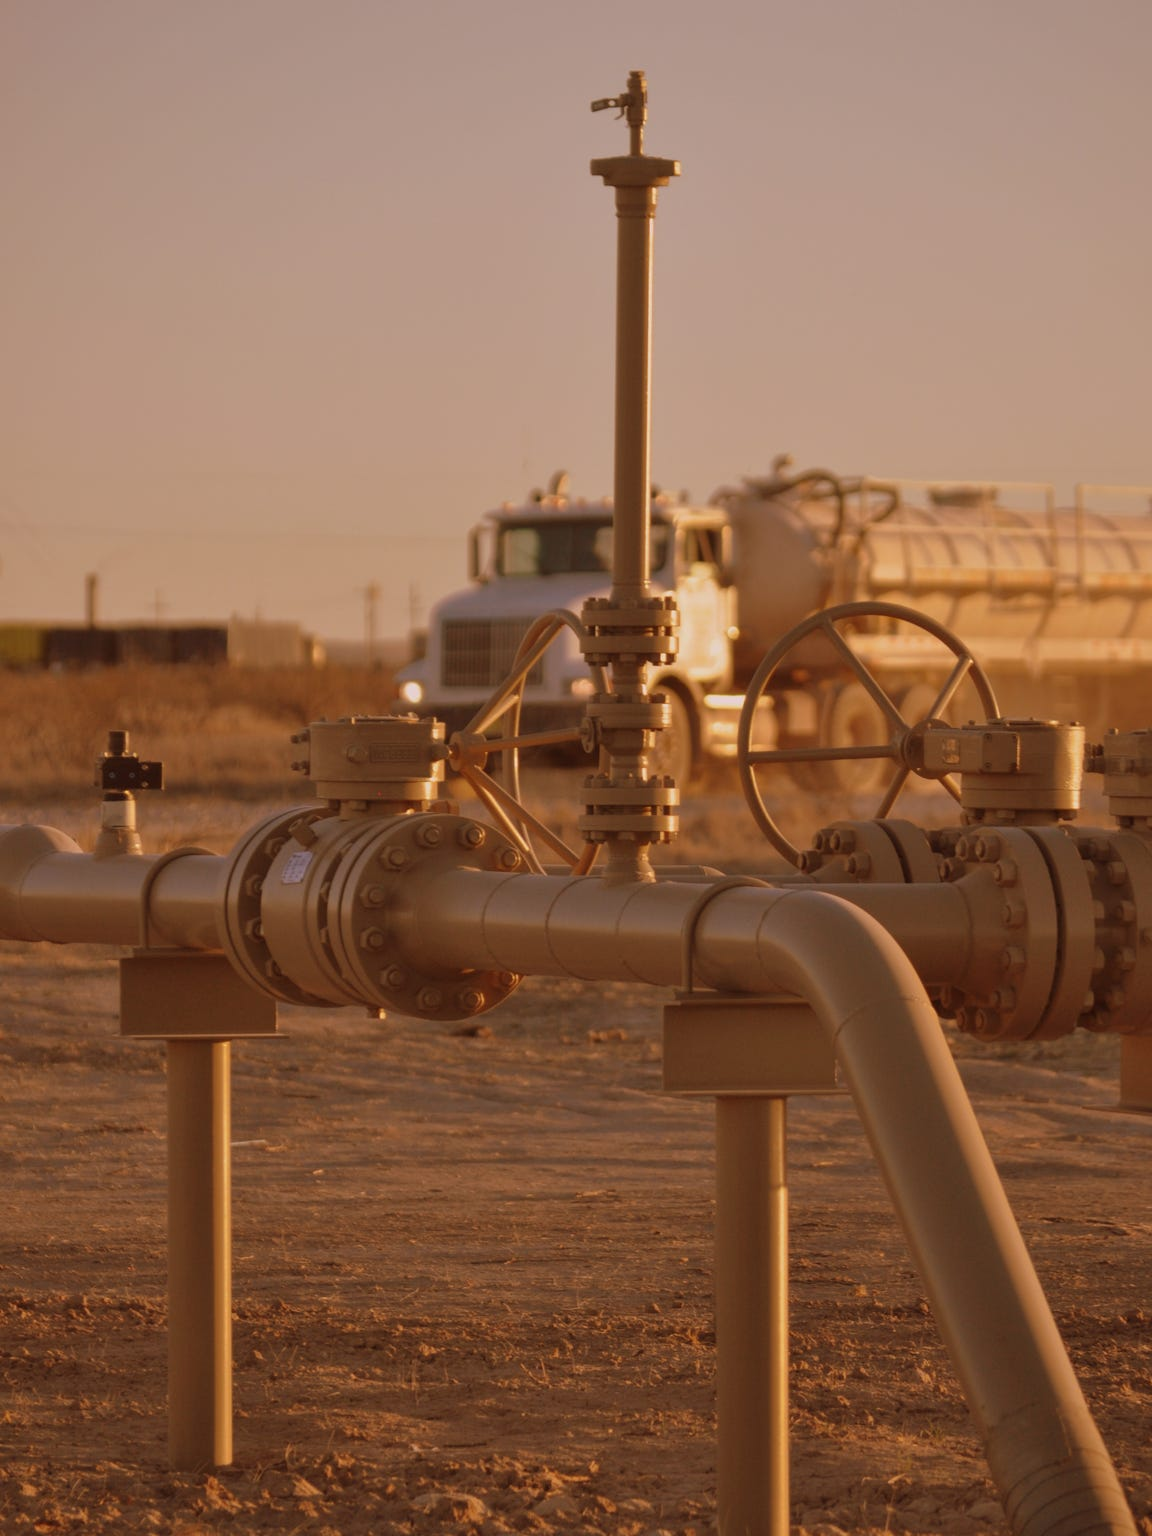 Pressure pipelines rise above the ground near an extraction